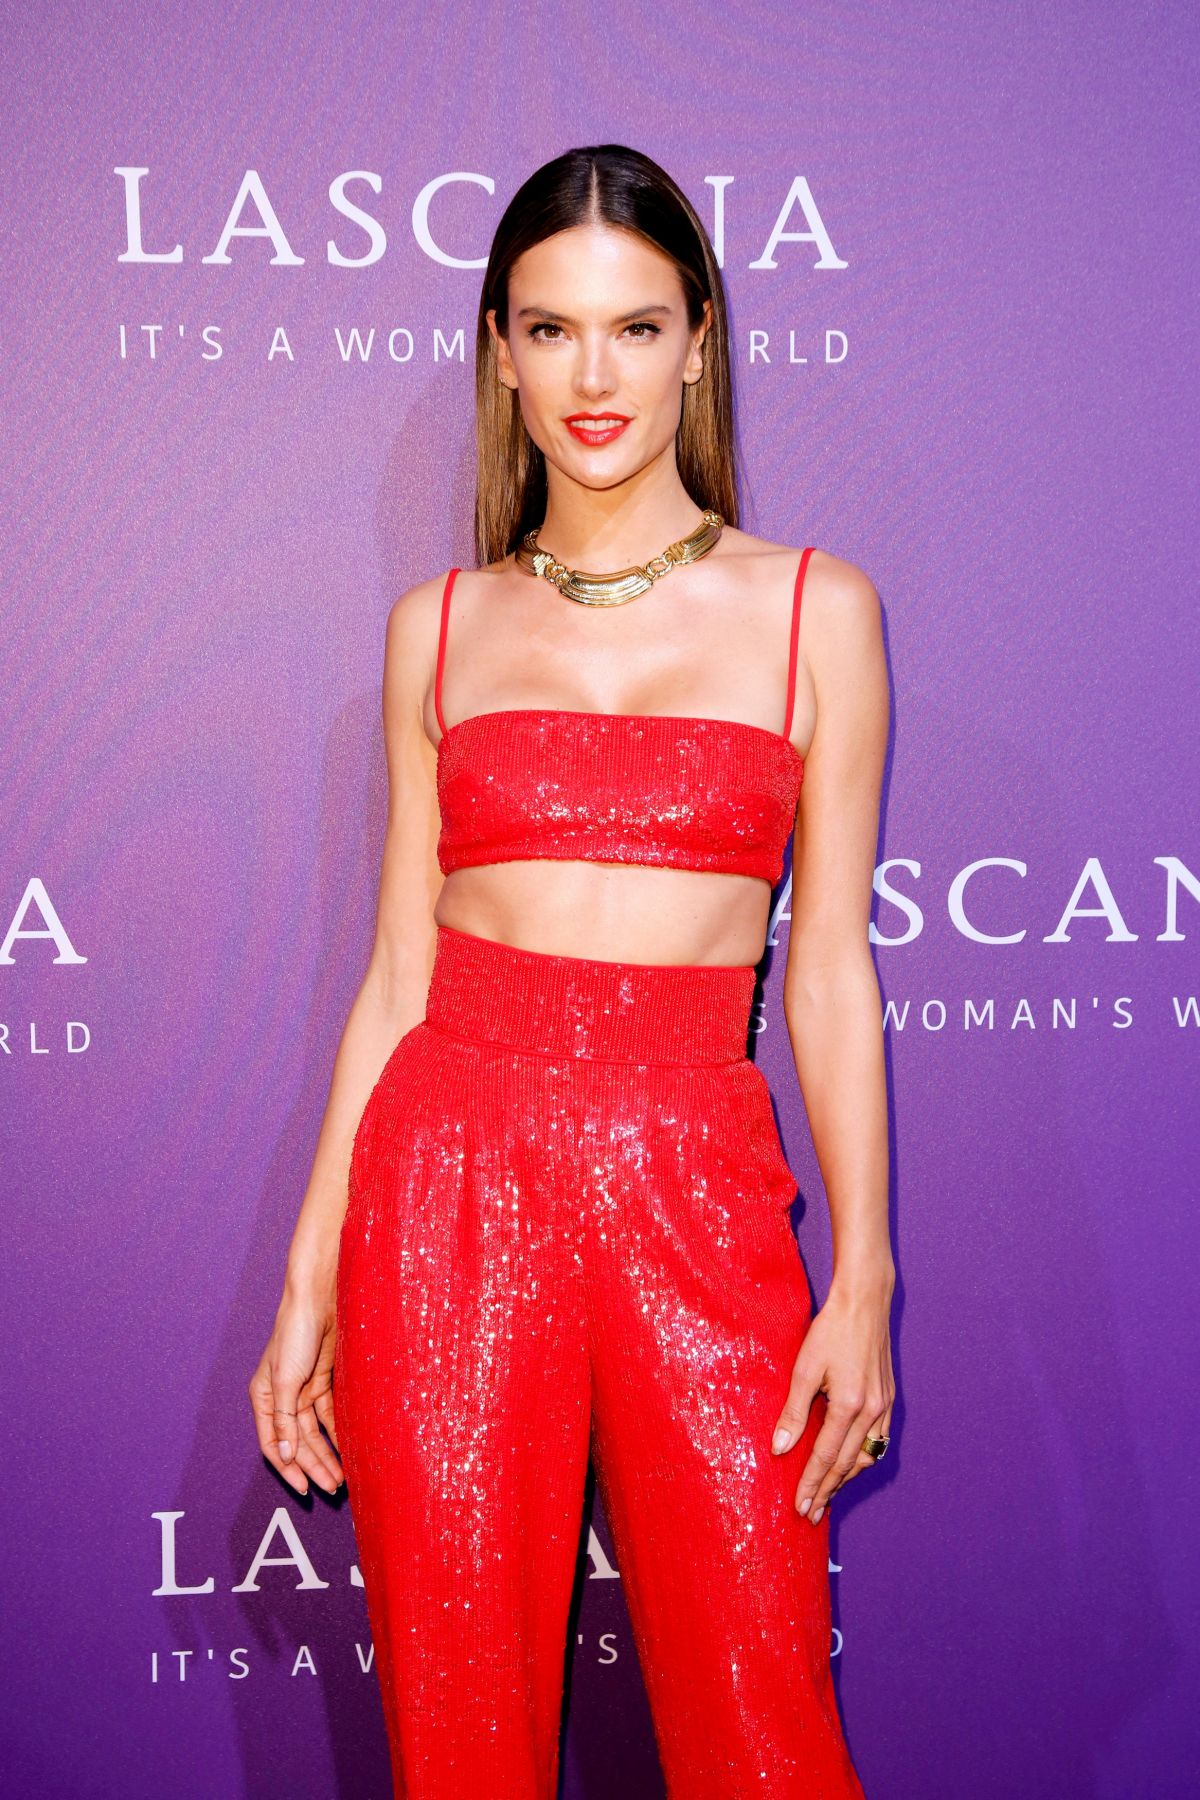 PSFW 2019 VIP SPONSOR LASCANA  Alessandra Ambrosio Sparkles at Lascana Fashion Show!  - Just Jared